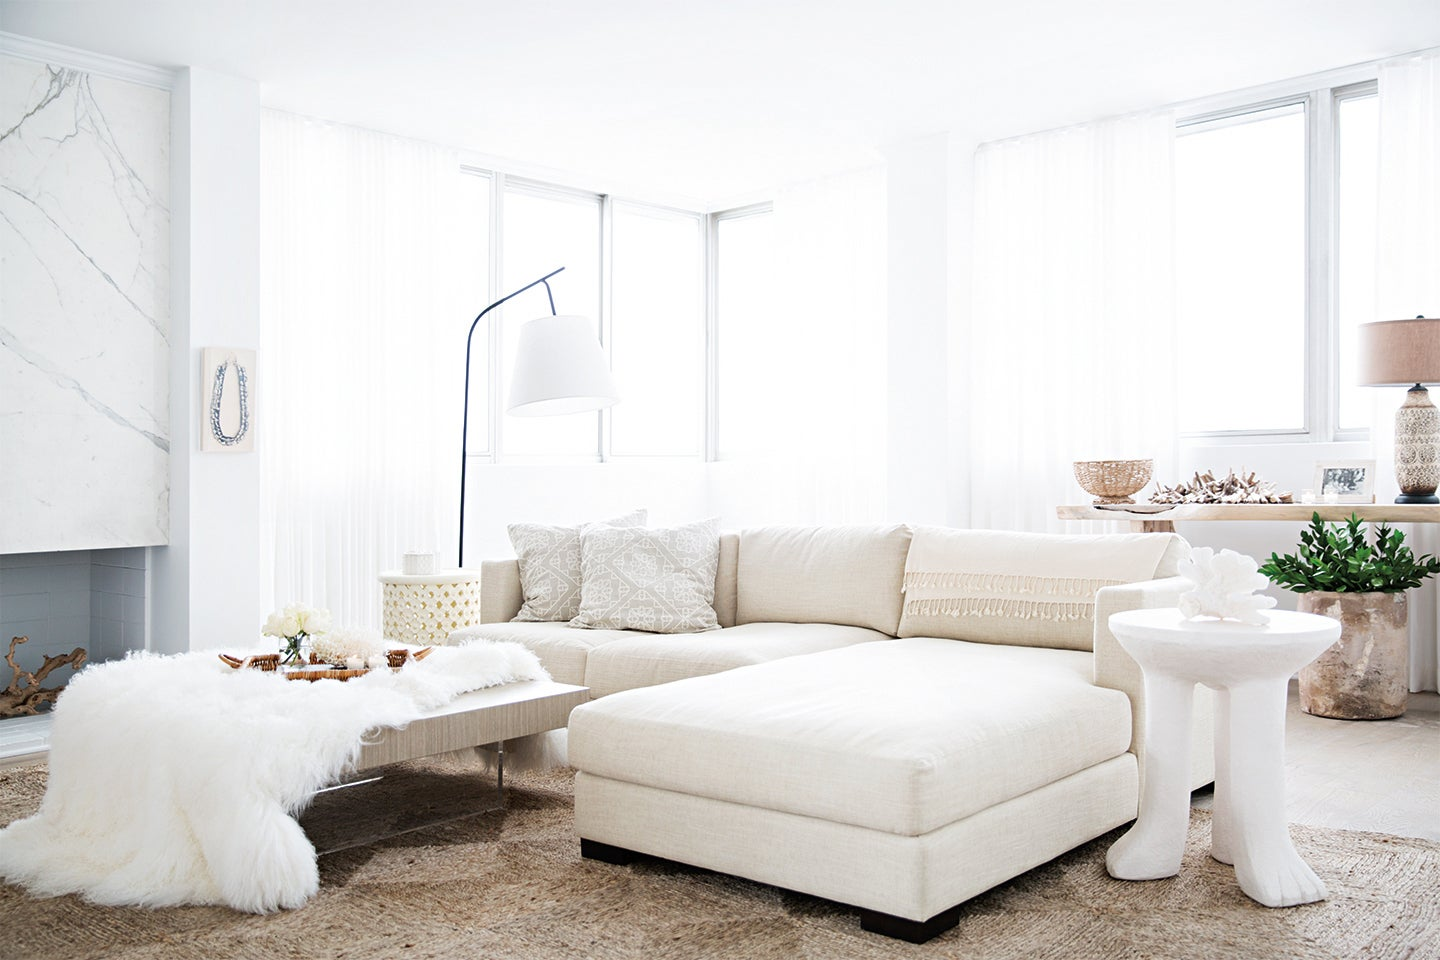 Medium size sectional in a living room